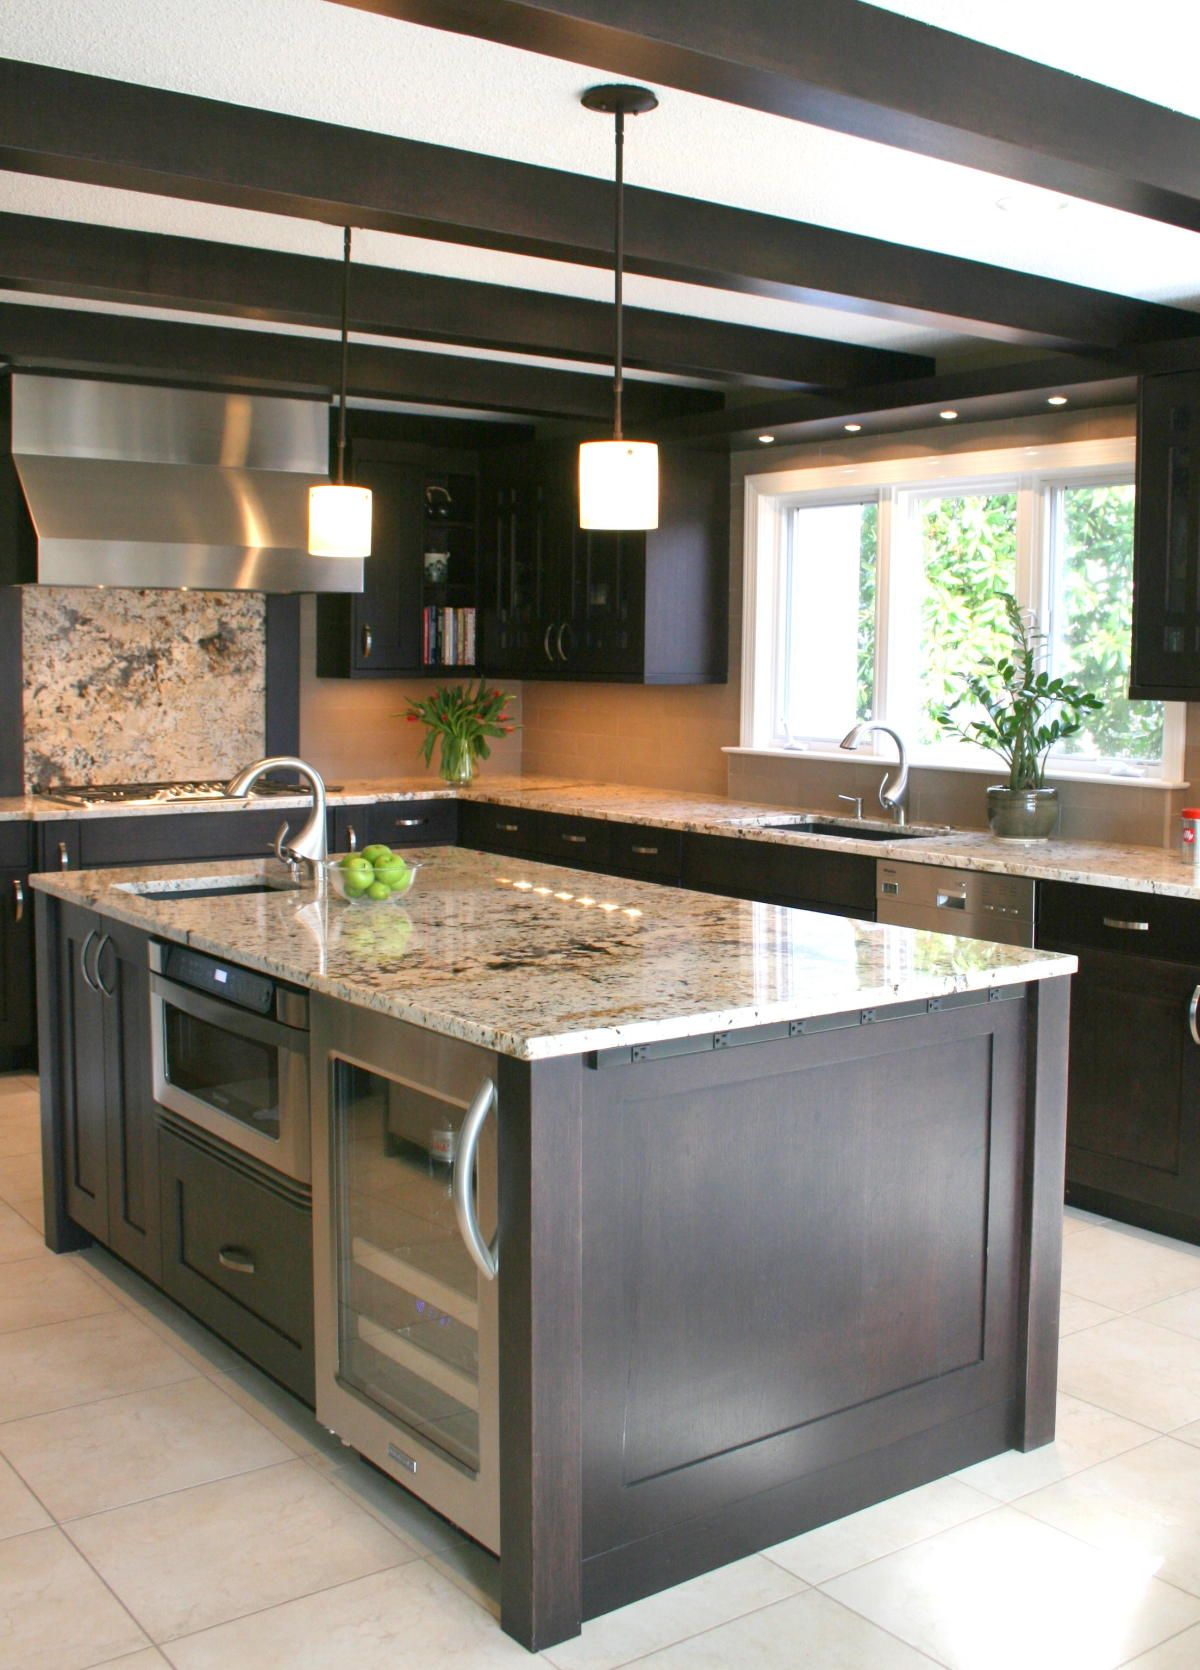 The working island appliances in the kitchen island for Design kitchen island online